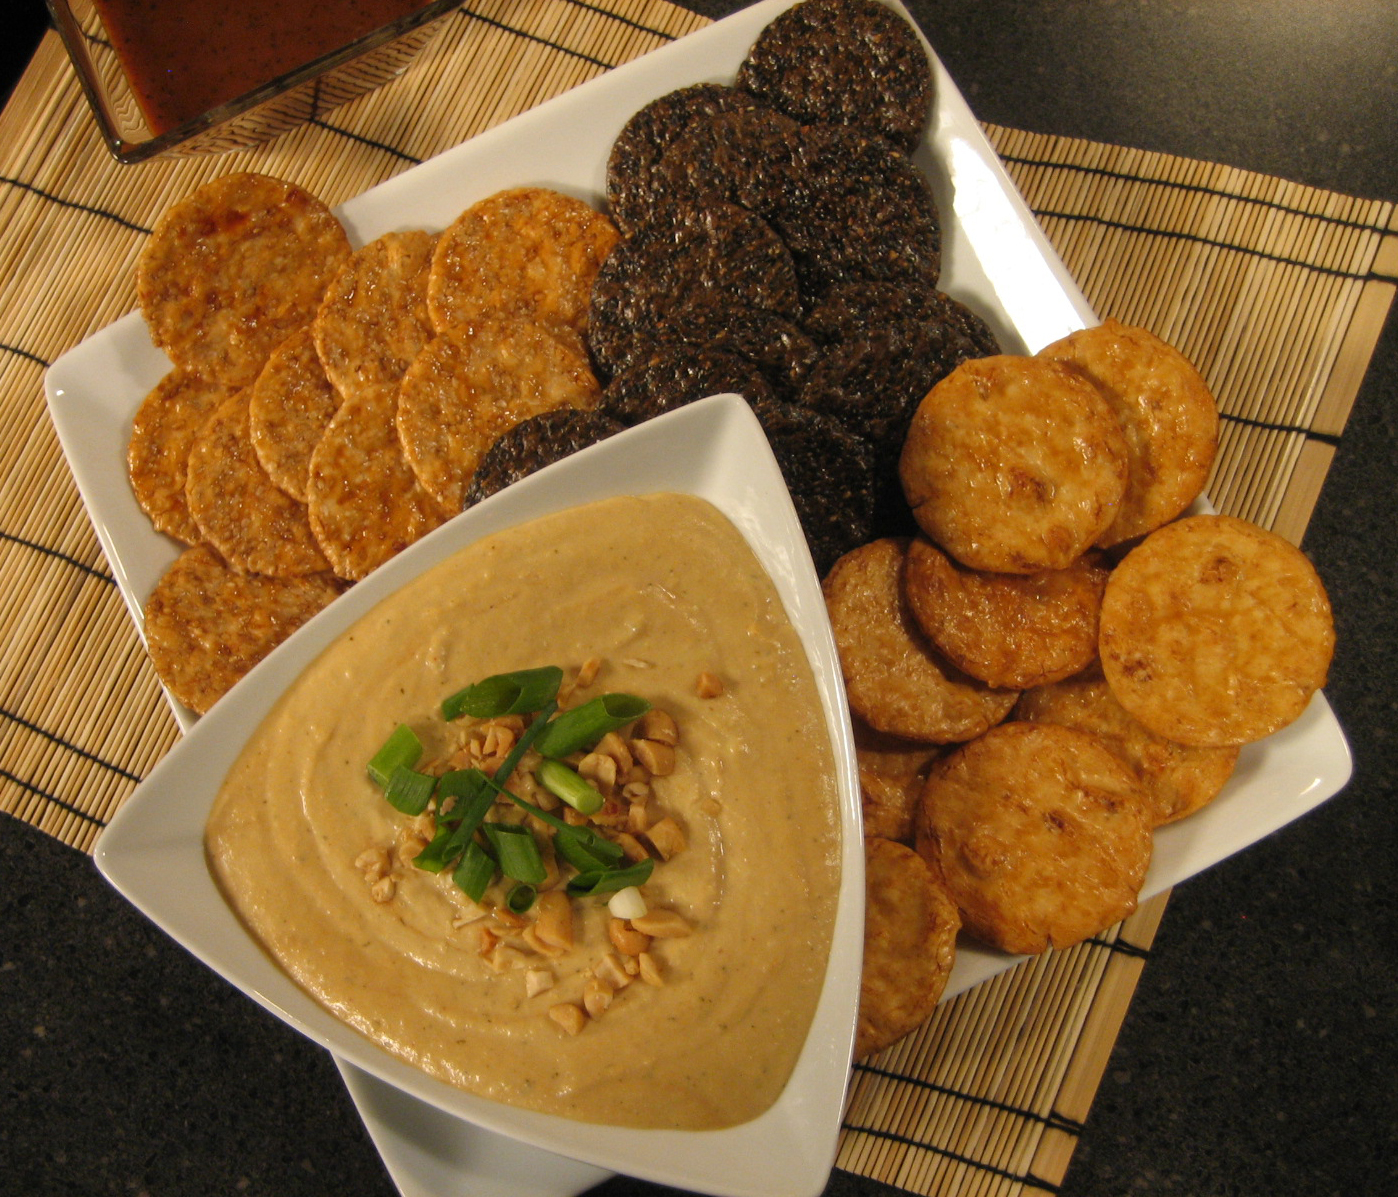 A platter of crackers with San-J Asian hummus in a bowl